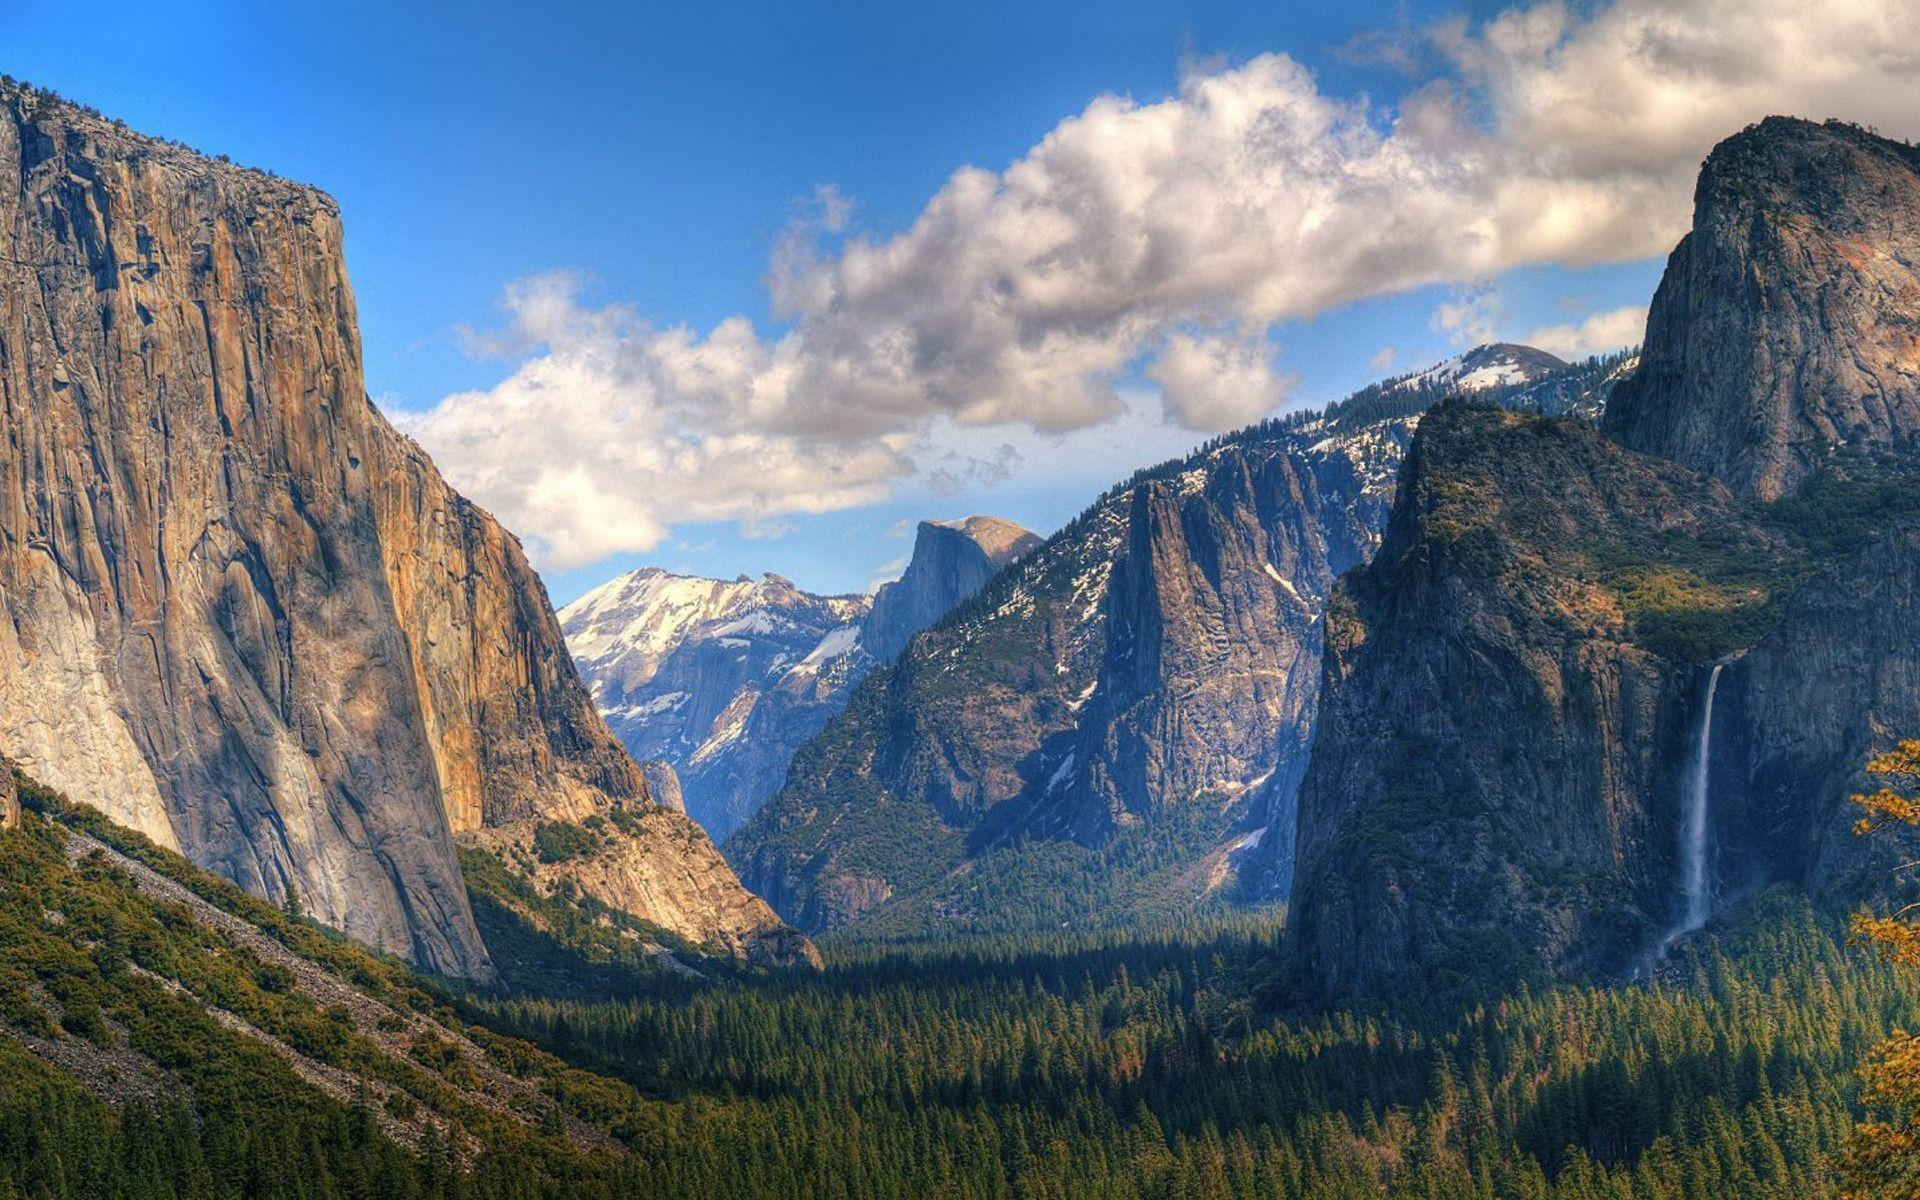 Yosemite national park hd wallpapers wallpaper cave - Yosemite national park hd wallpaper ...